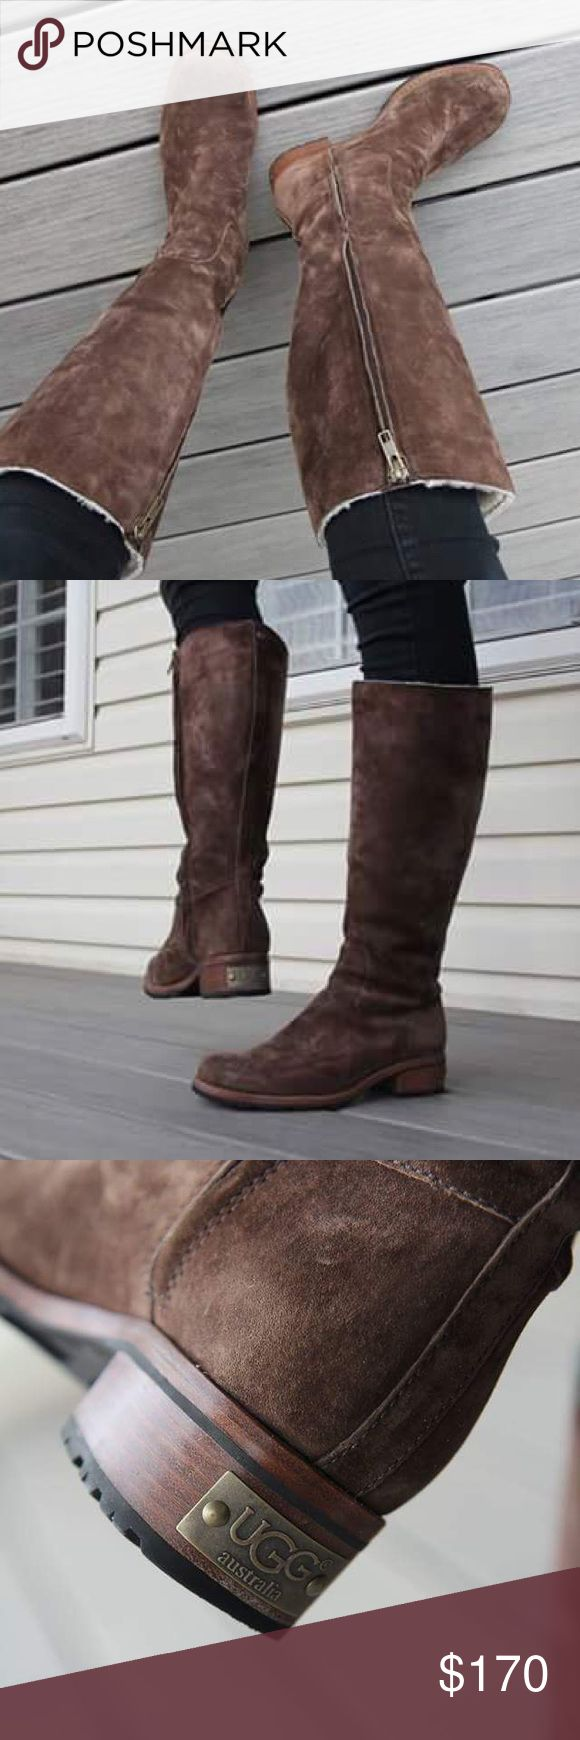 Ugg riding boots Brown ugg riding boots!! Very minimal wear super comfy not tight around calf. Sherpa lining:) UGG Shoes Winter & Rain Boots